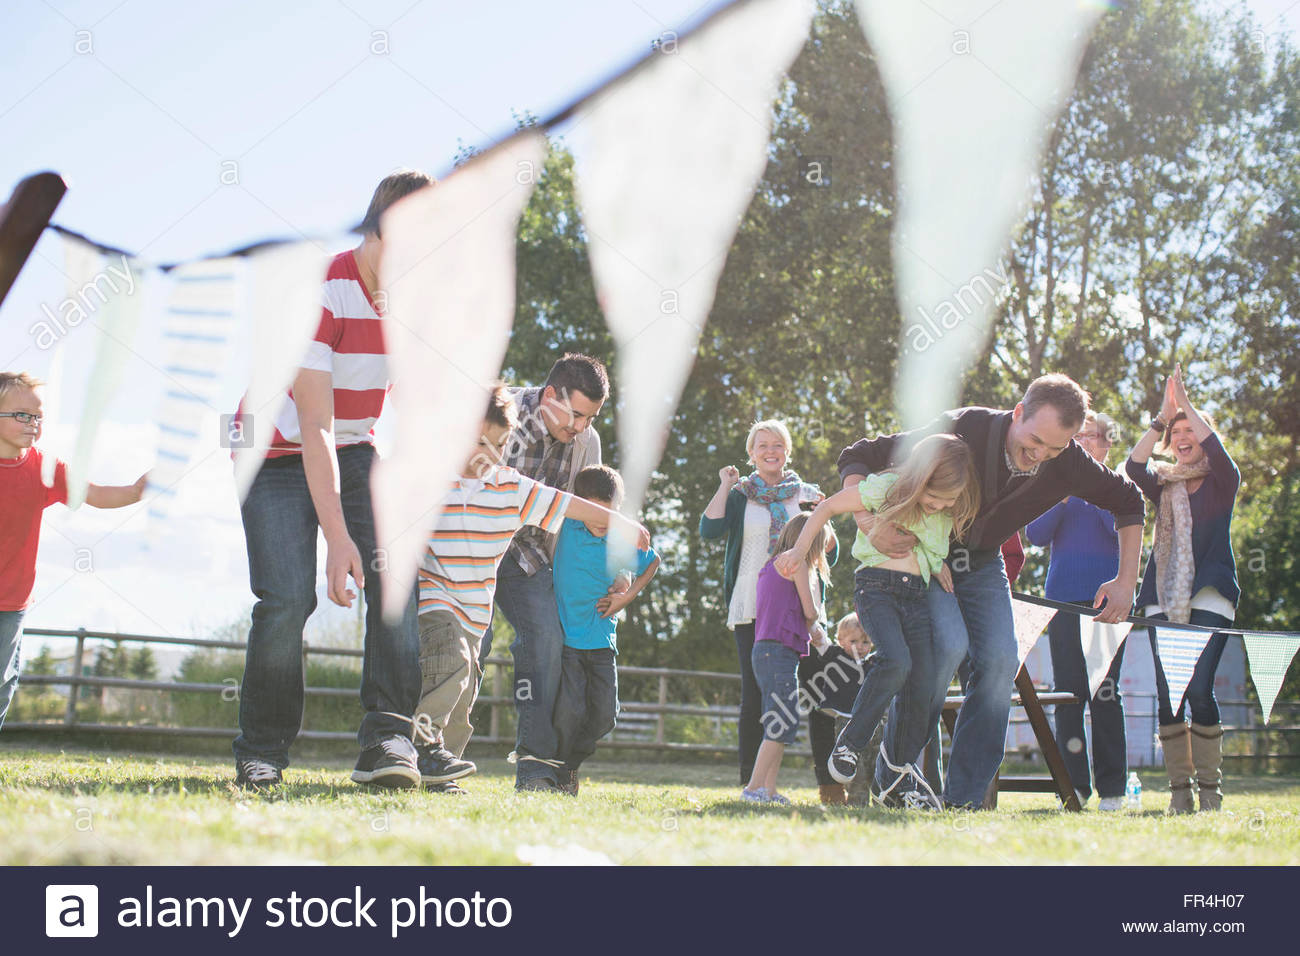 Family cheering family in 3 legged race event. - Stock Image